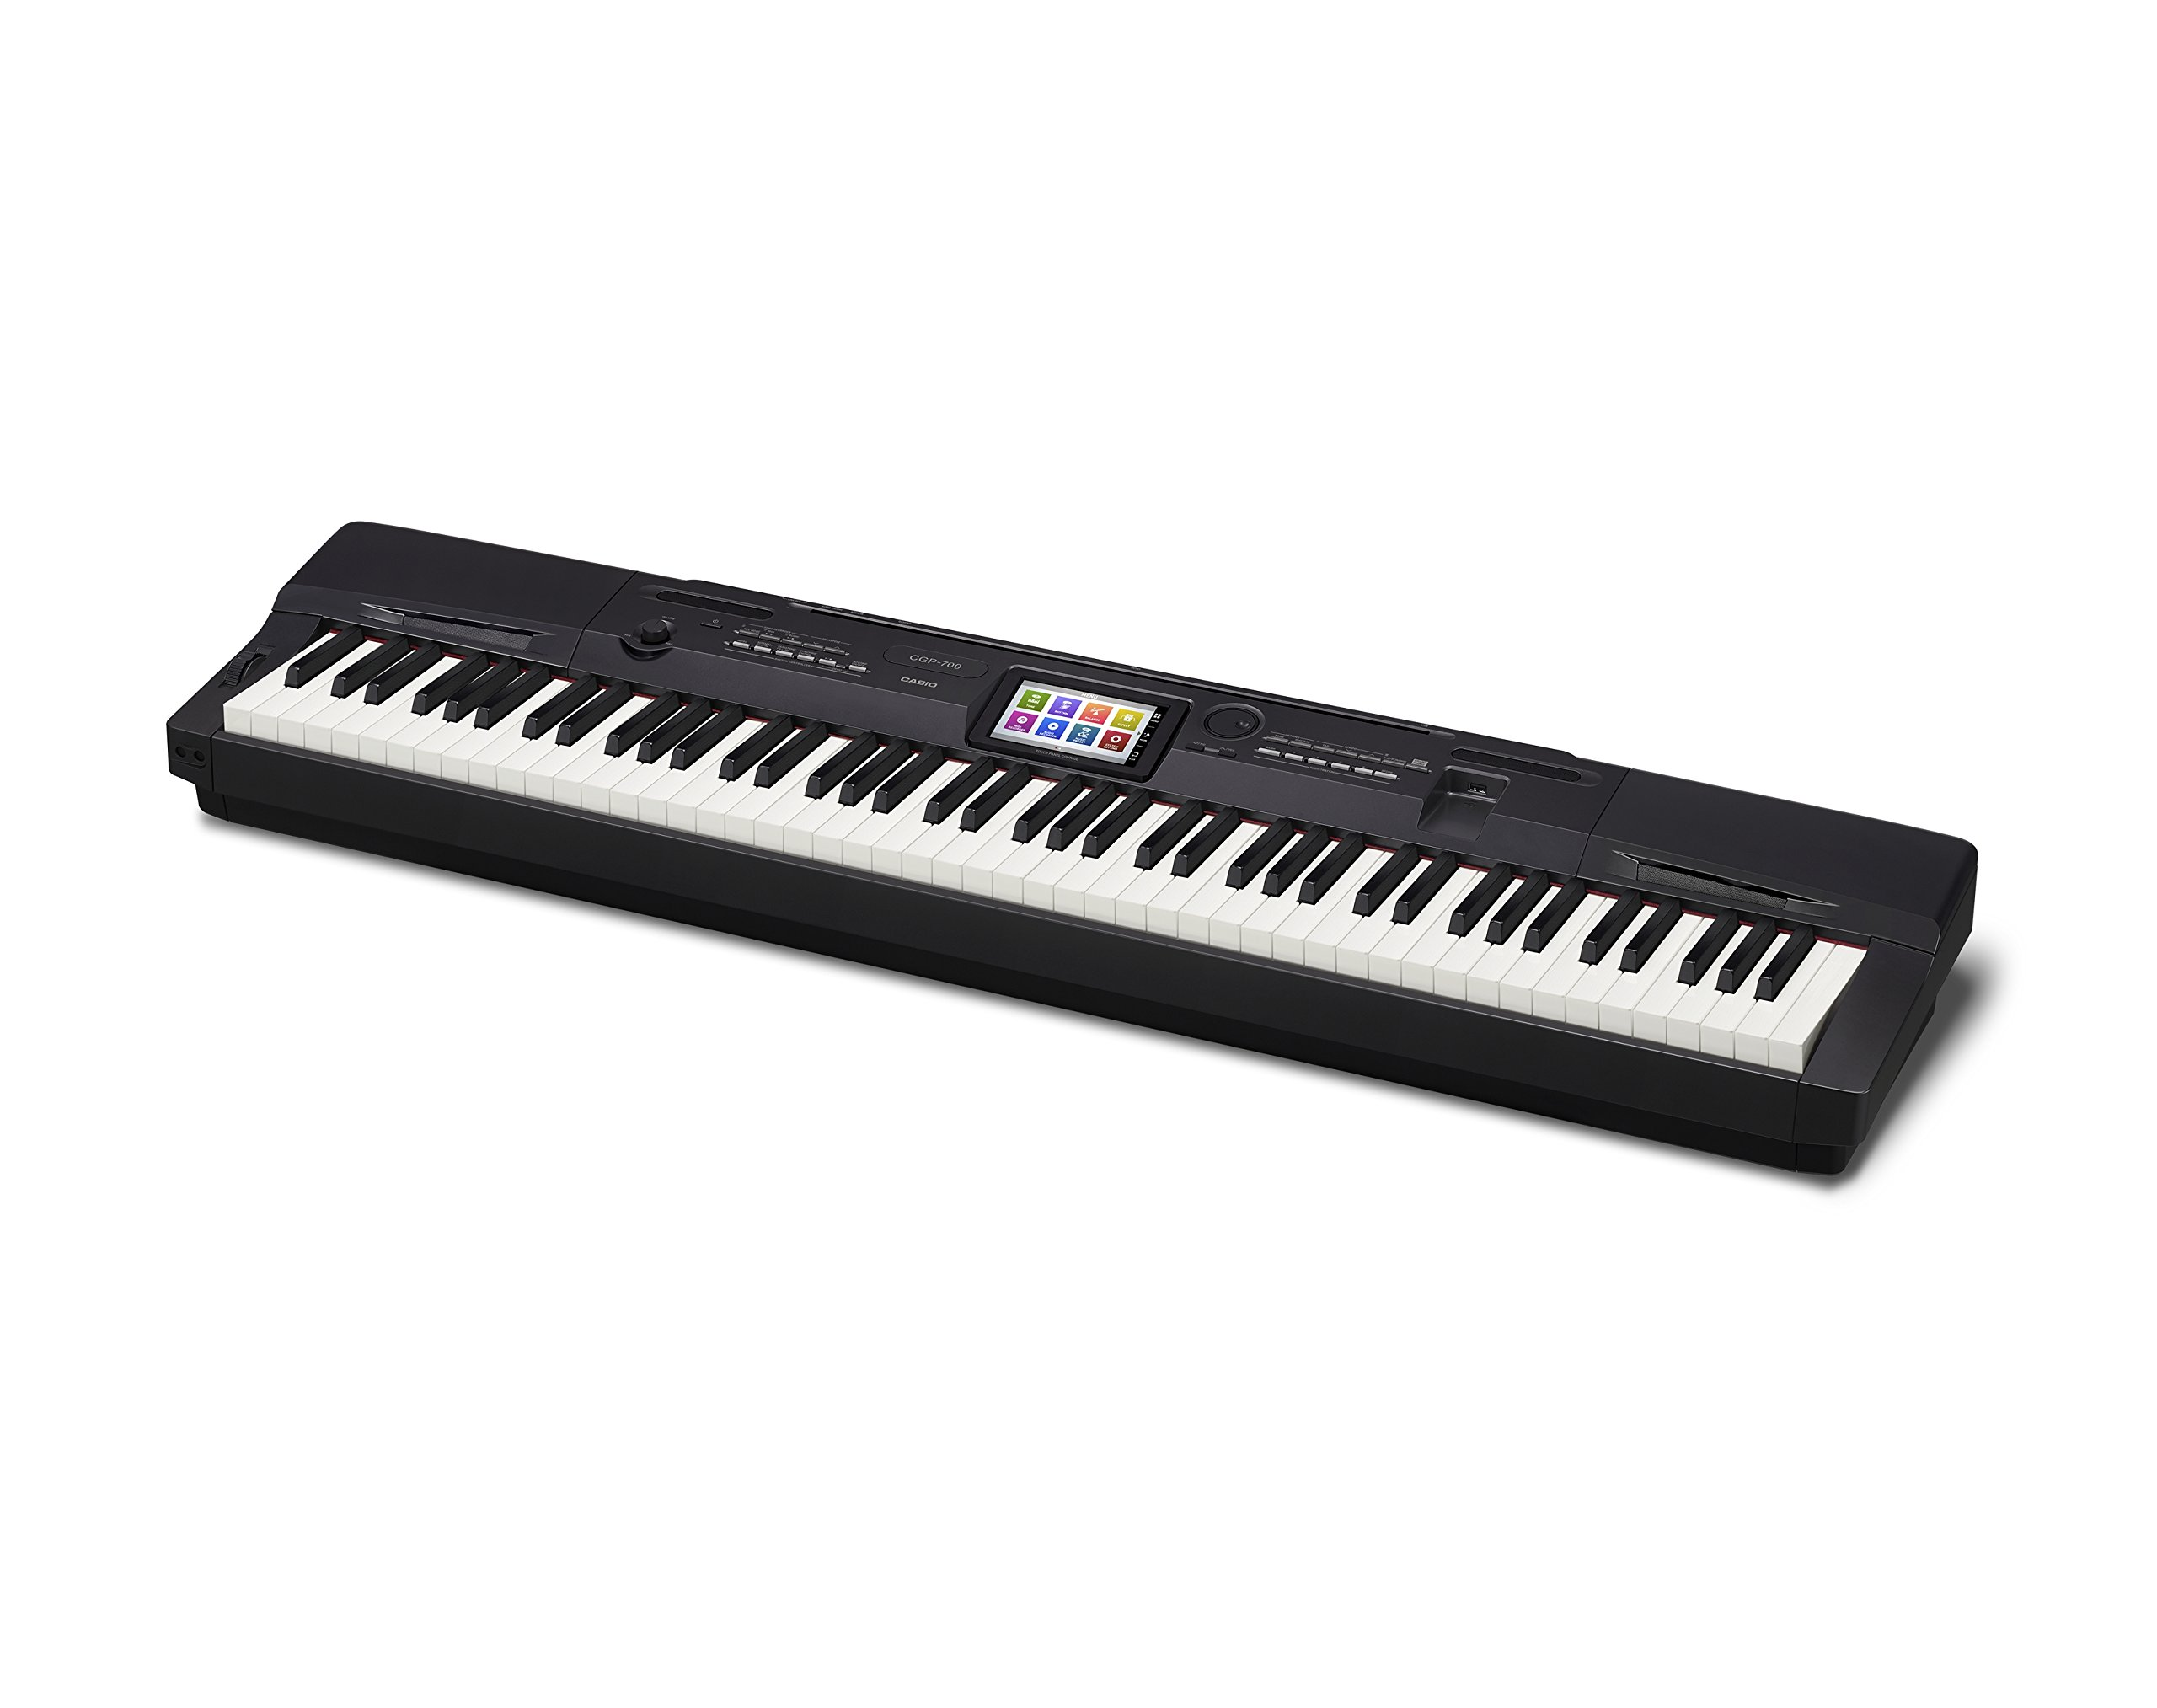 Casio CGP-700BK 88-Key Compact Grand Digital Piano Bundle with Furniture-Style Bench, Dust Cover, Instructional DVD, Instructional Book, Sustain Pedal, and Polishing Cloth - Black by Casio (Image #4)